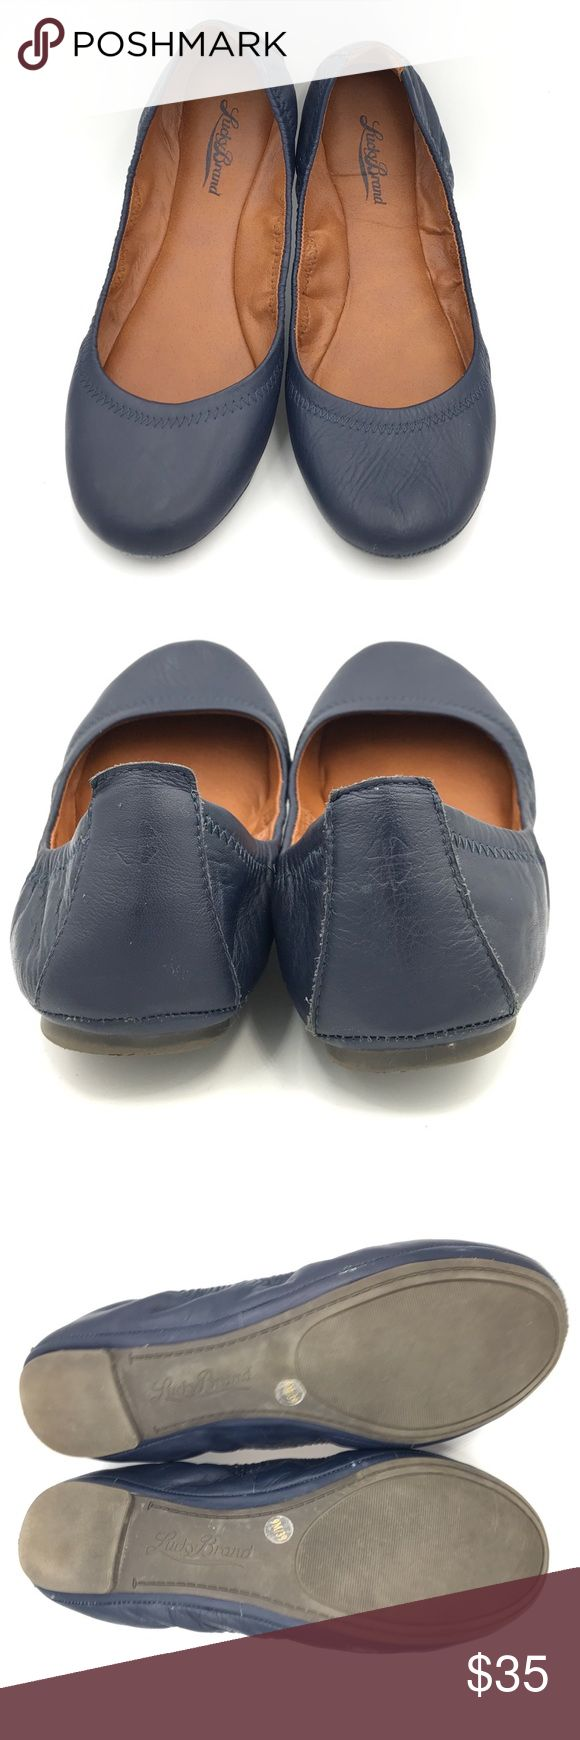 "Lucky Brand Emmie Navy Blue Ballet Flats Lucky Brand ""Emmie"" navy blue ballet flats in very good used condition. Lucky Brand Shoes Flats & Loafers"